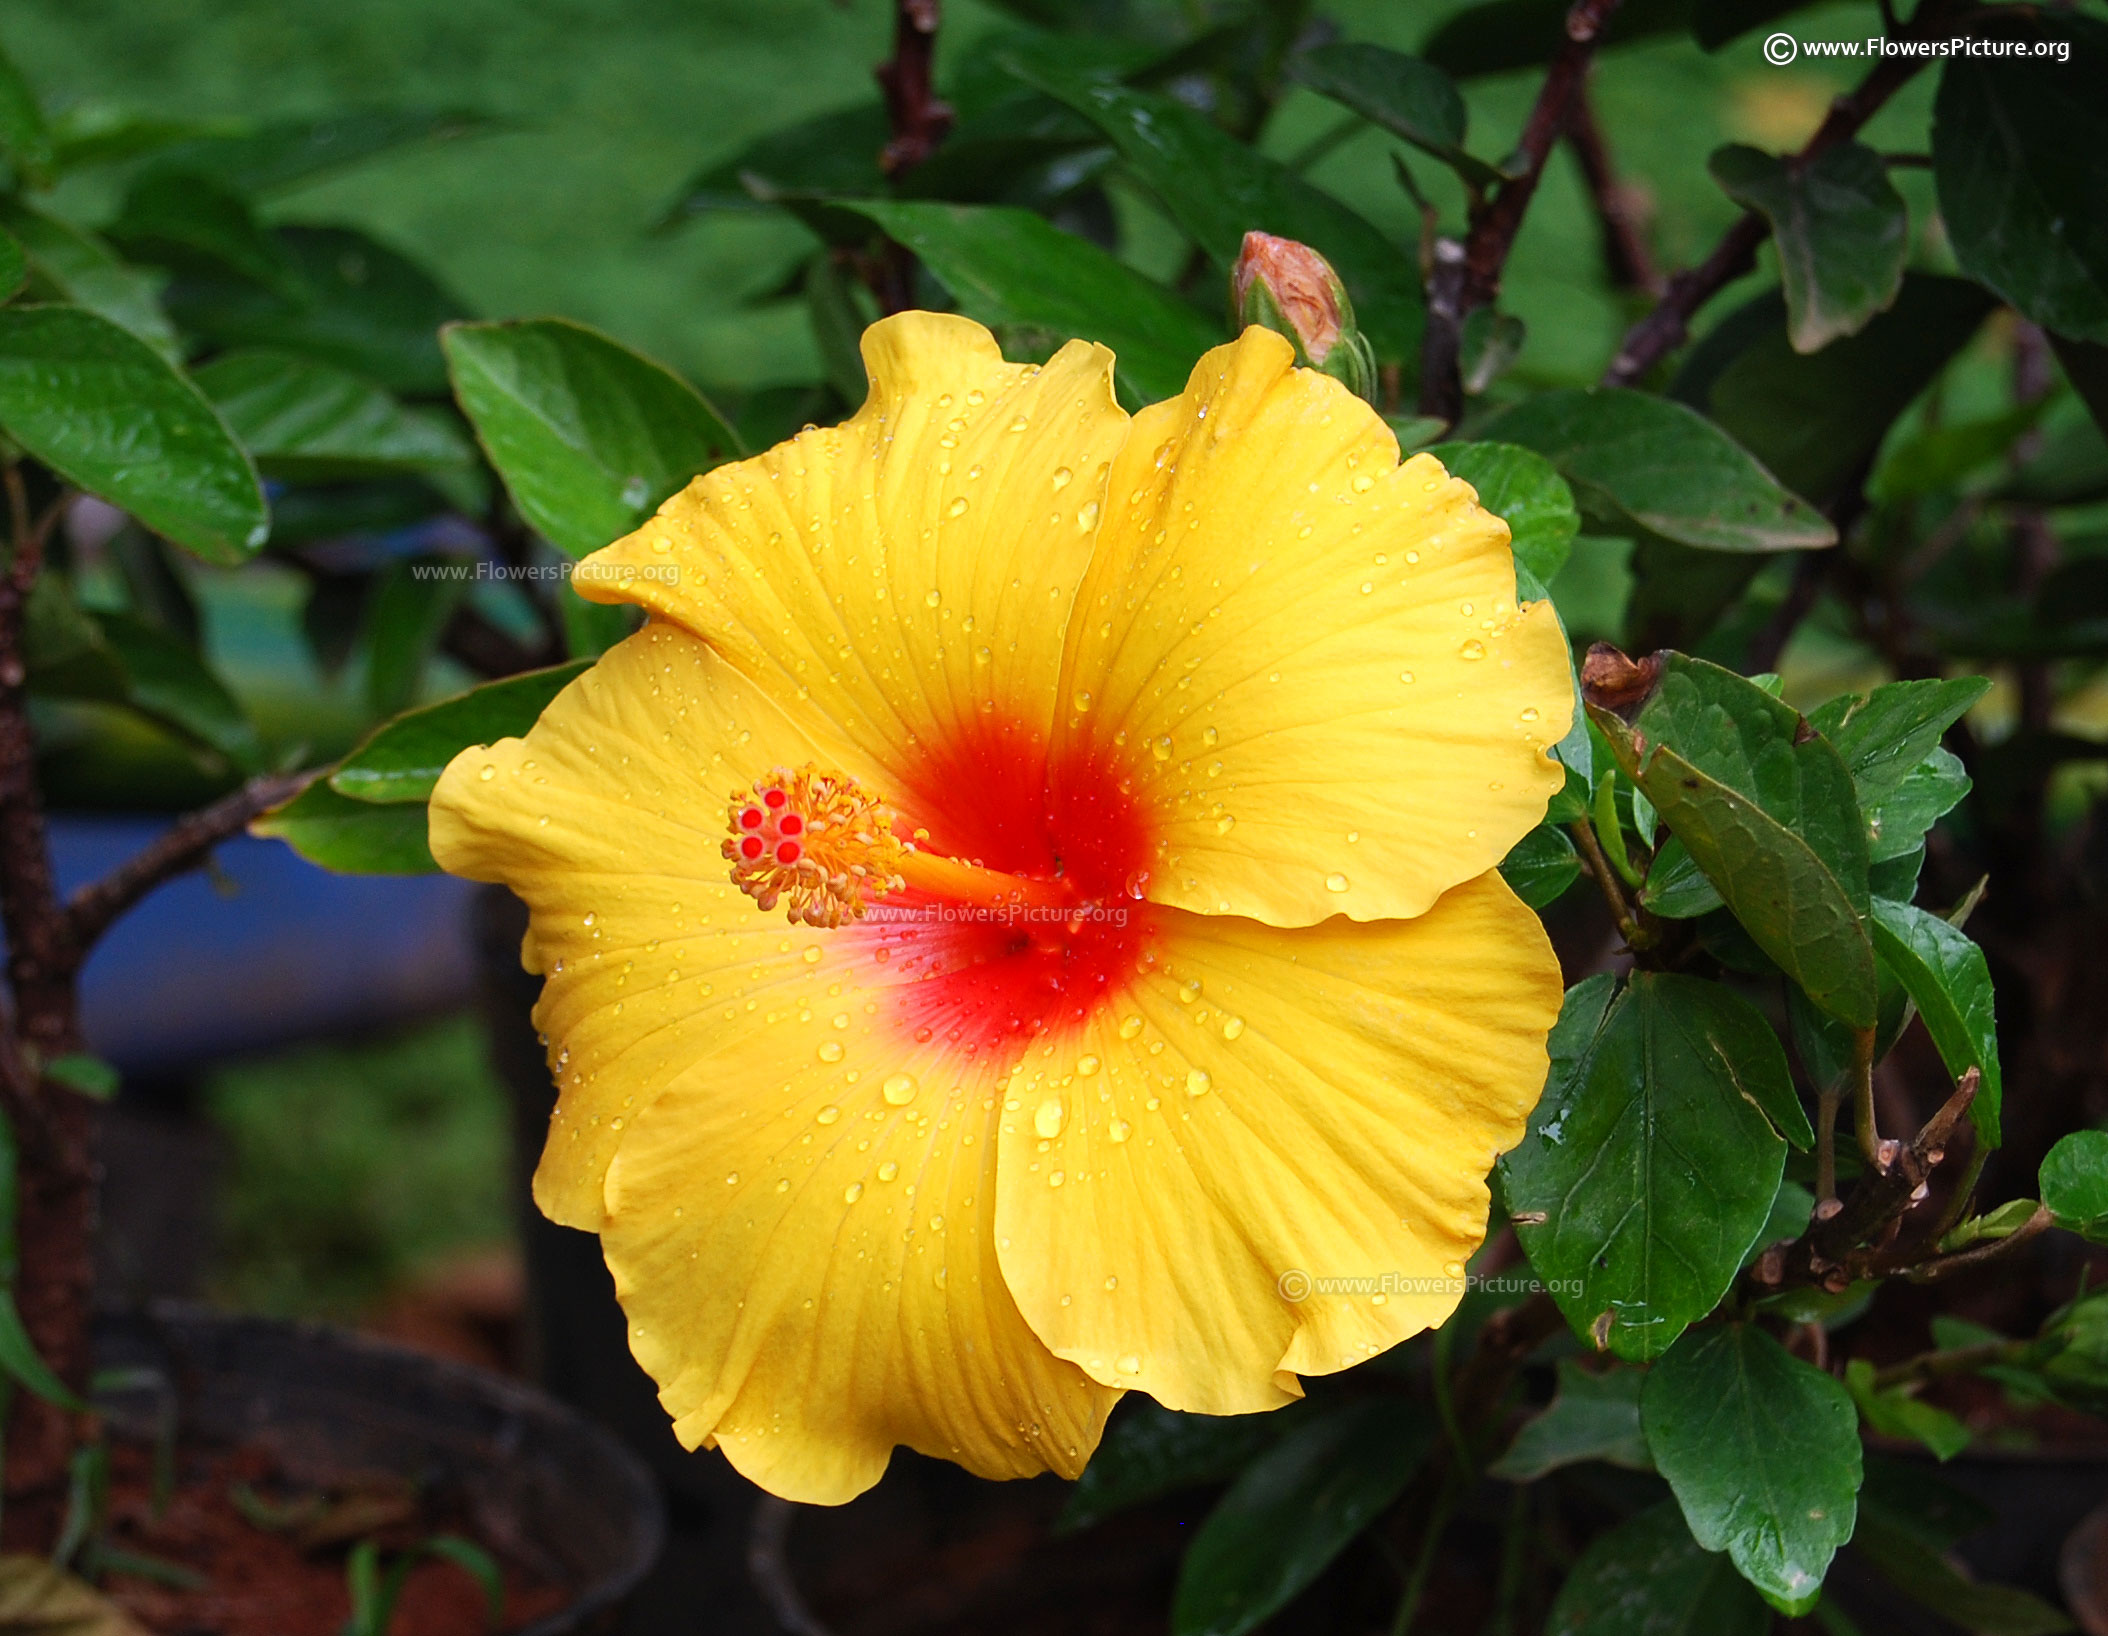 Hibiscus flower varieties hawaiian hibiscus yellow and red izmirmasajfo Image collections